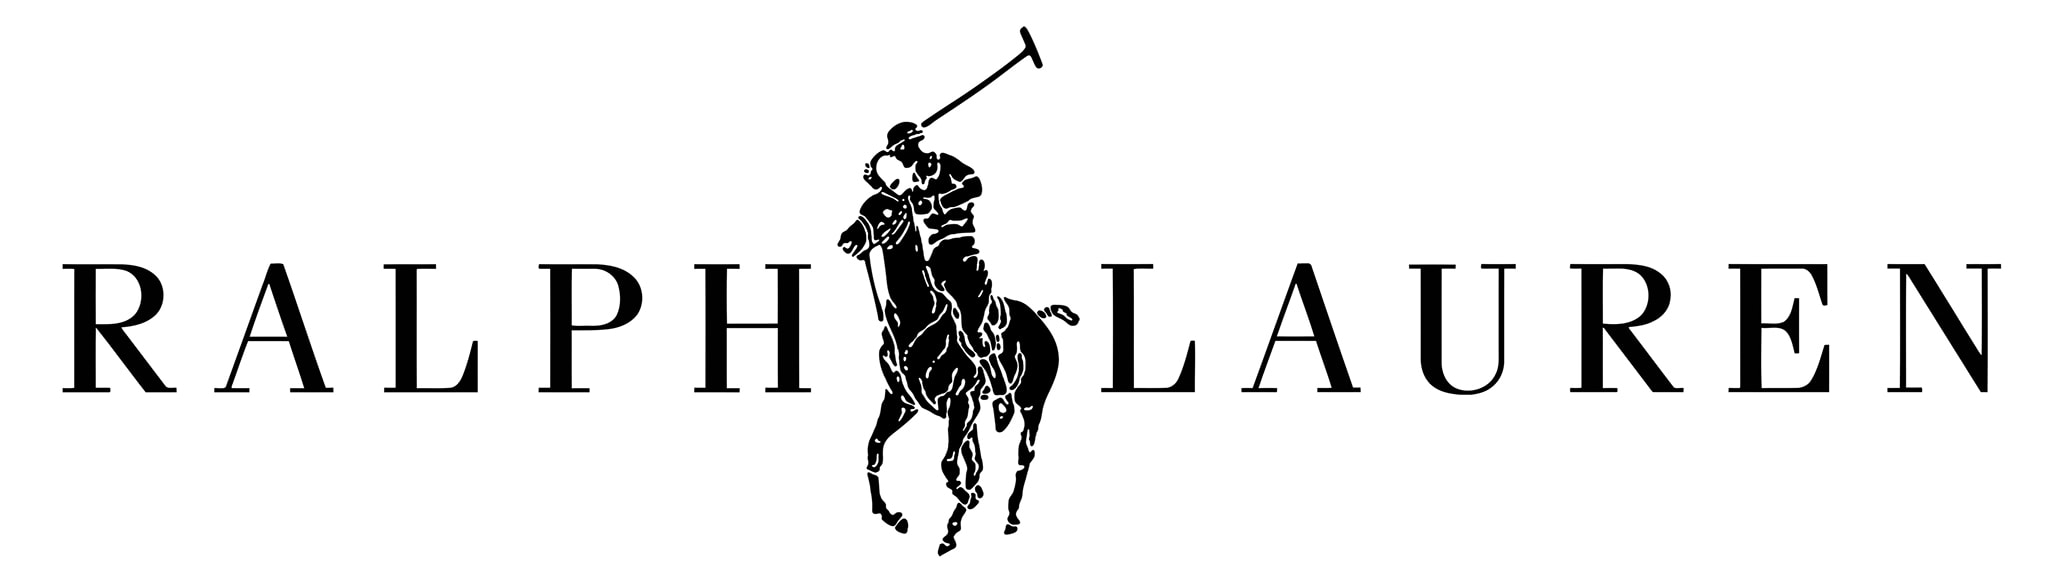 Ralph Lauren is easily identified by the famous polo horseman logo